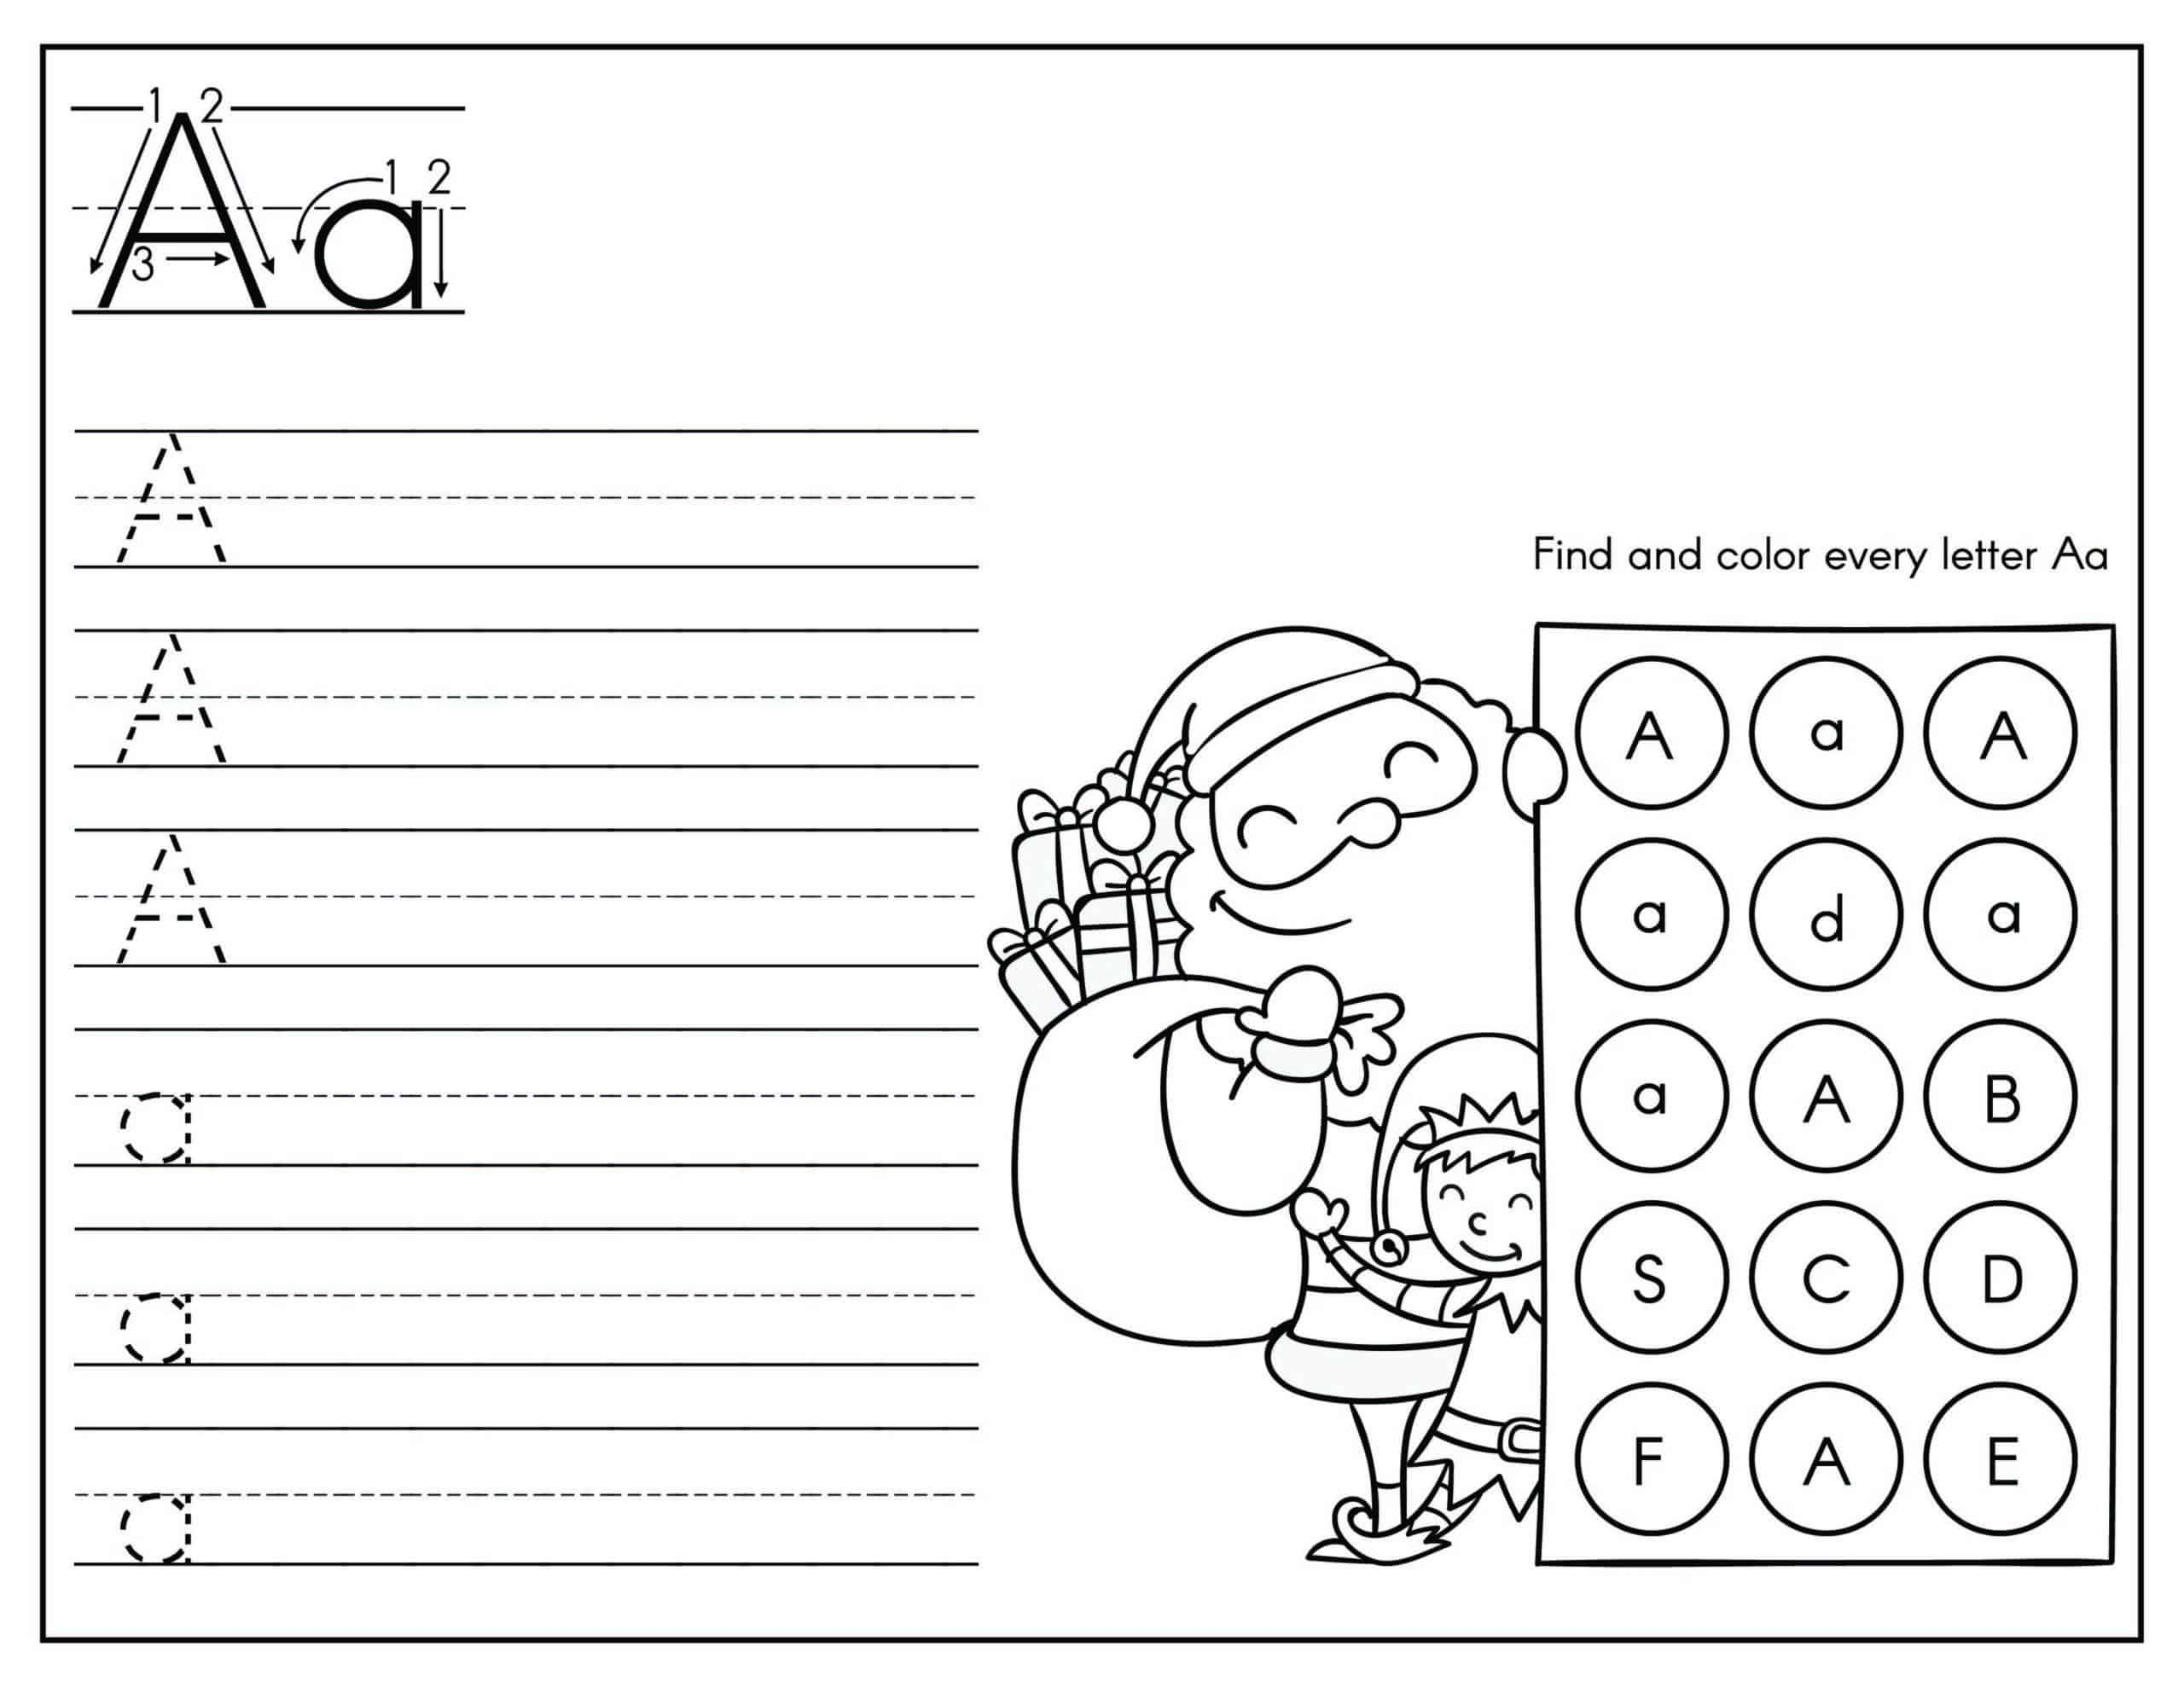 Letter a uppercase and lowercase tracing worksheet with Santa